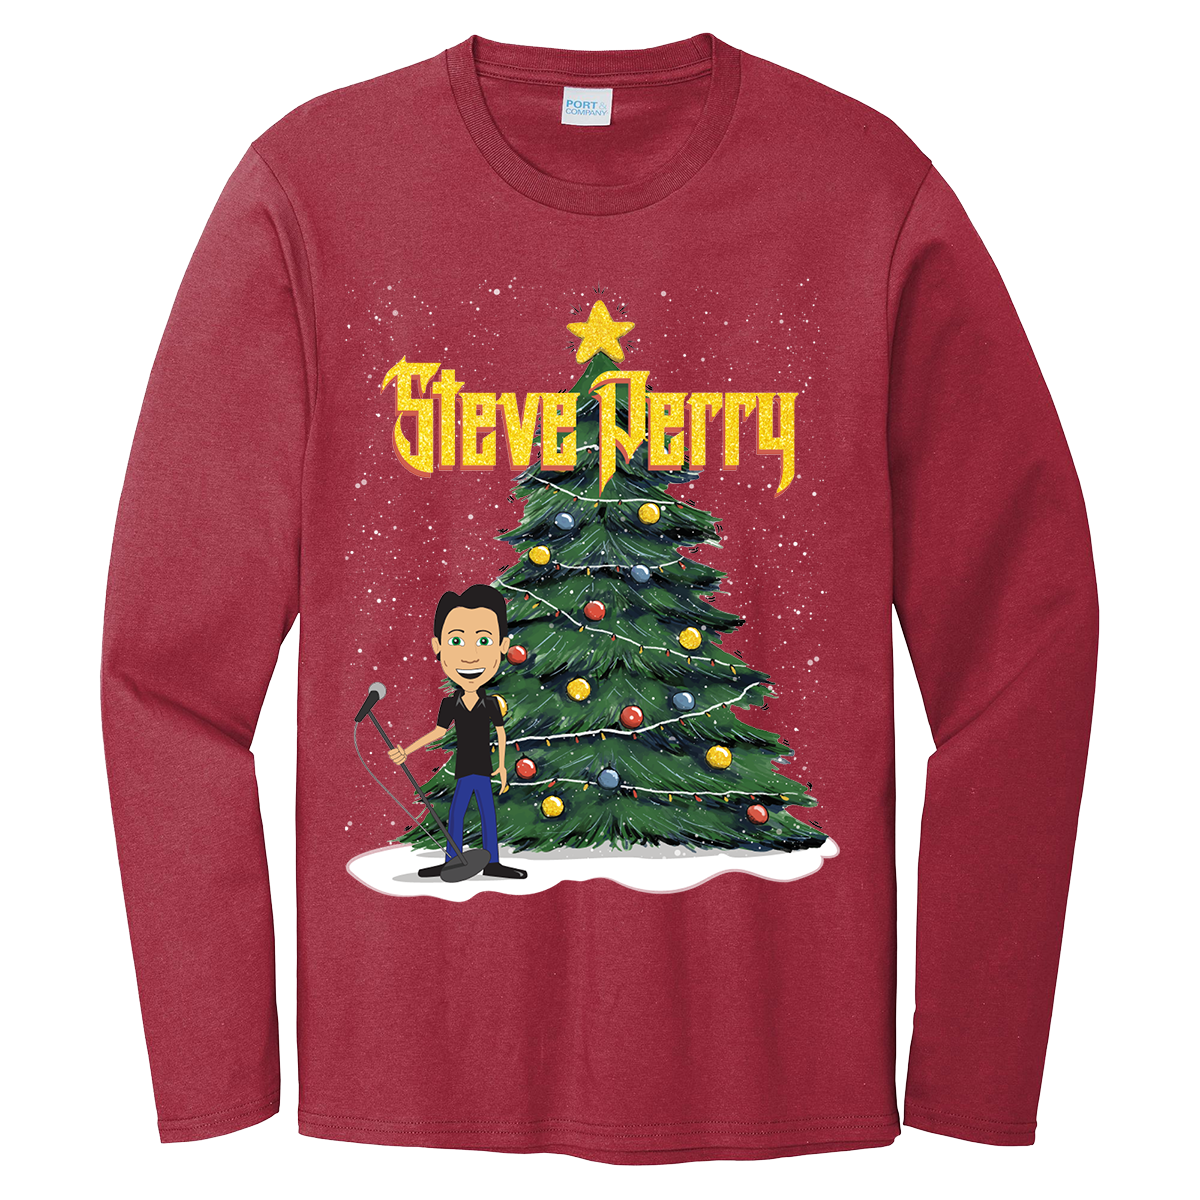 Steve Perry Long Sleeve Christmas Tee (3 Options)